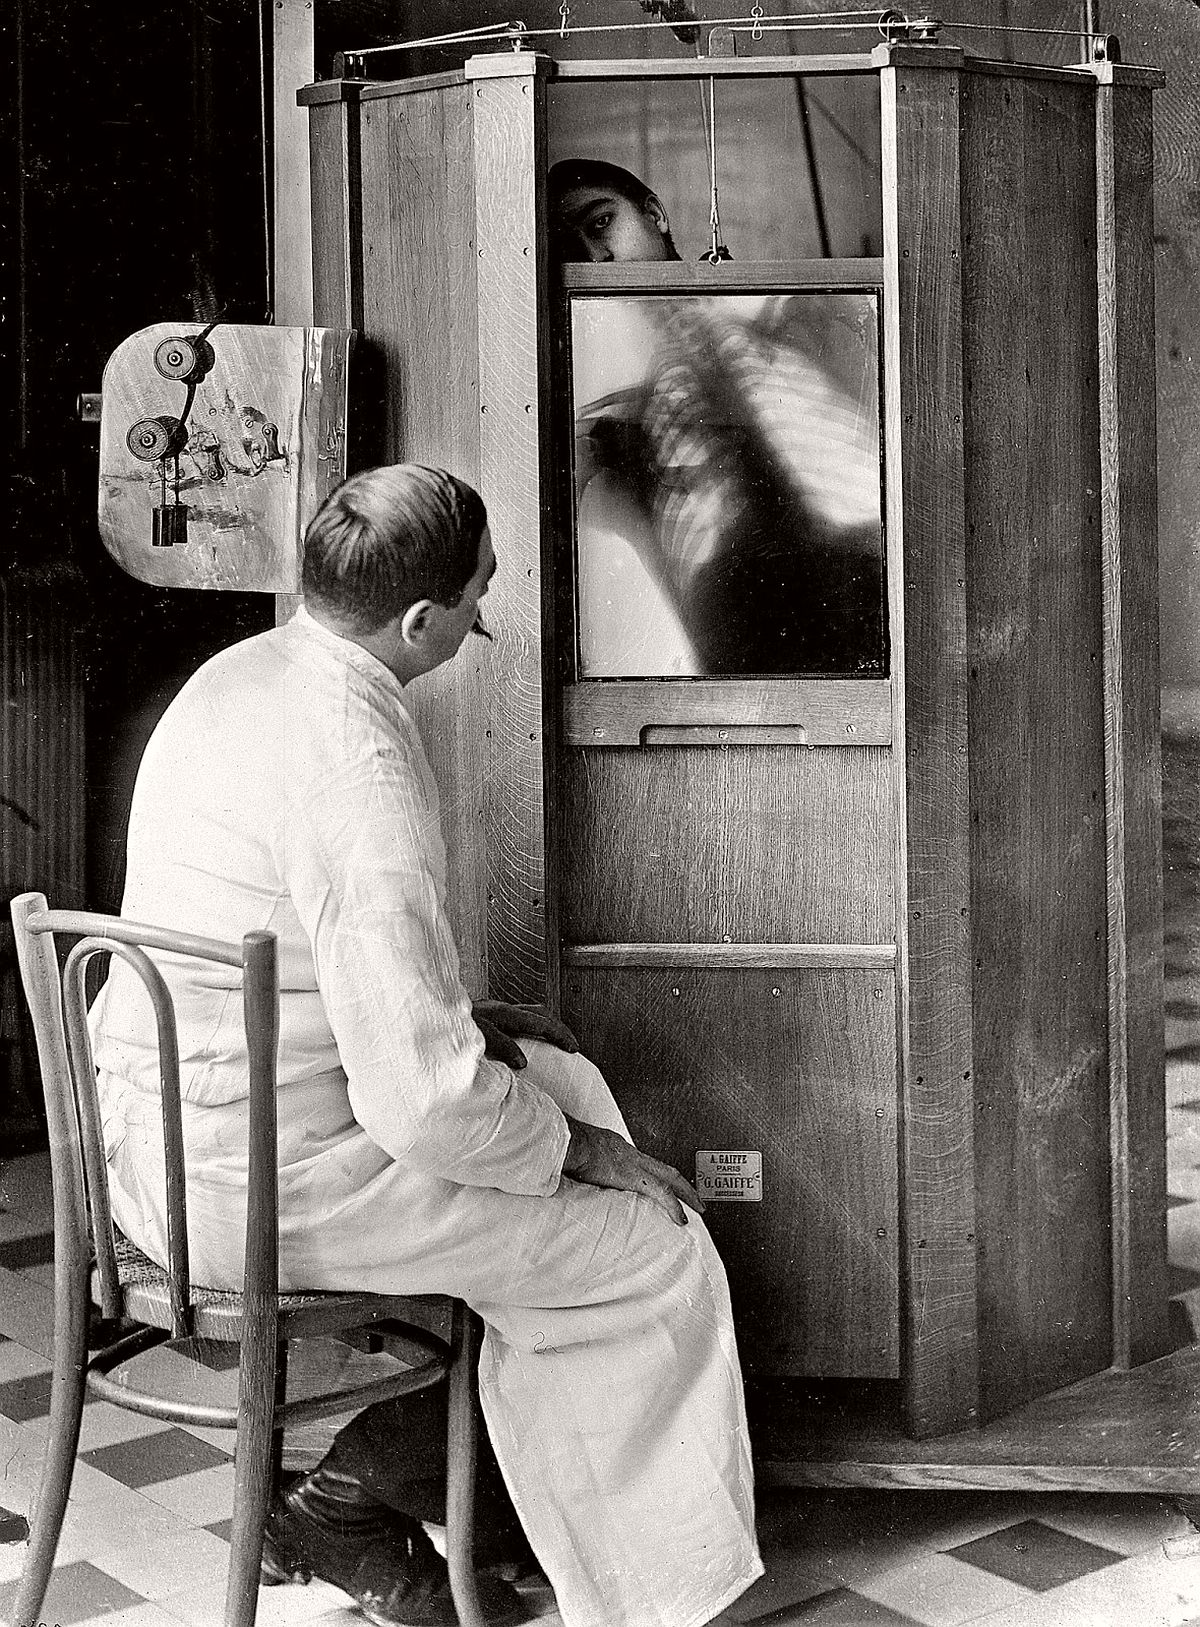 A chest X-ray in progress at Professor Menard's radiology department at the Cochin hospital, Paris, 1914. (Jacques Boyer/Roger Viollet—Getty Images)